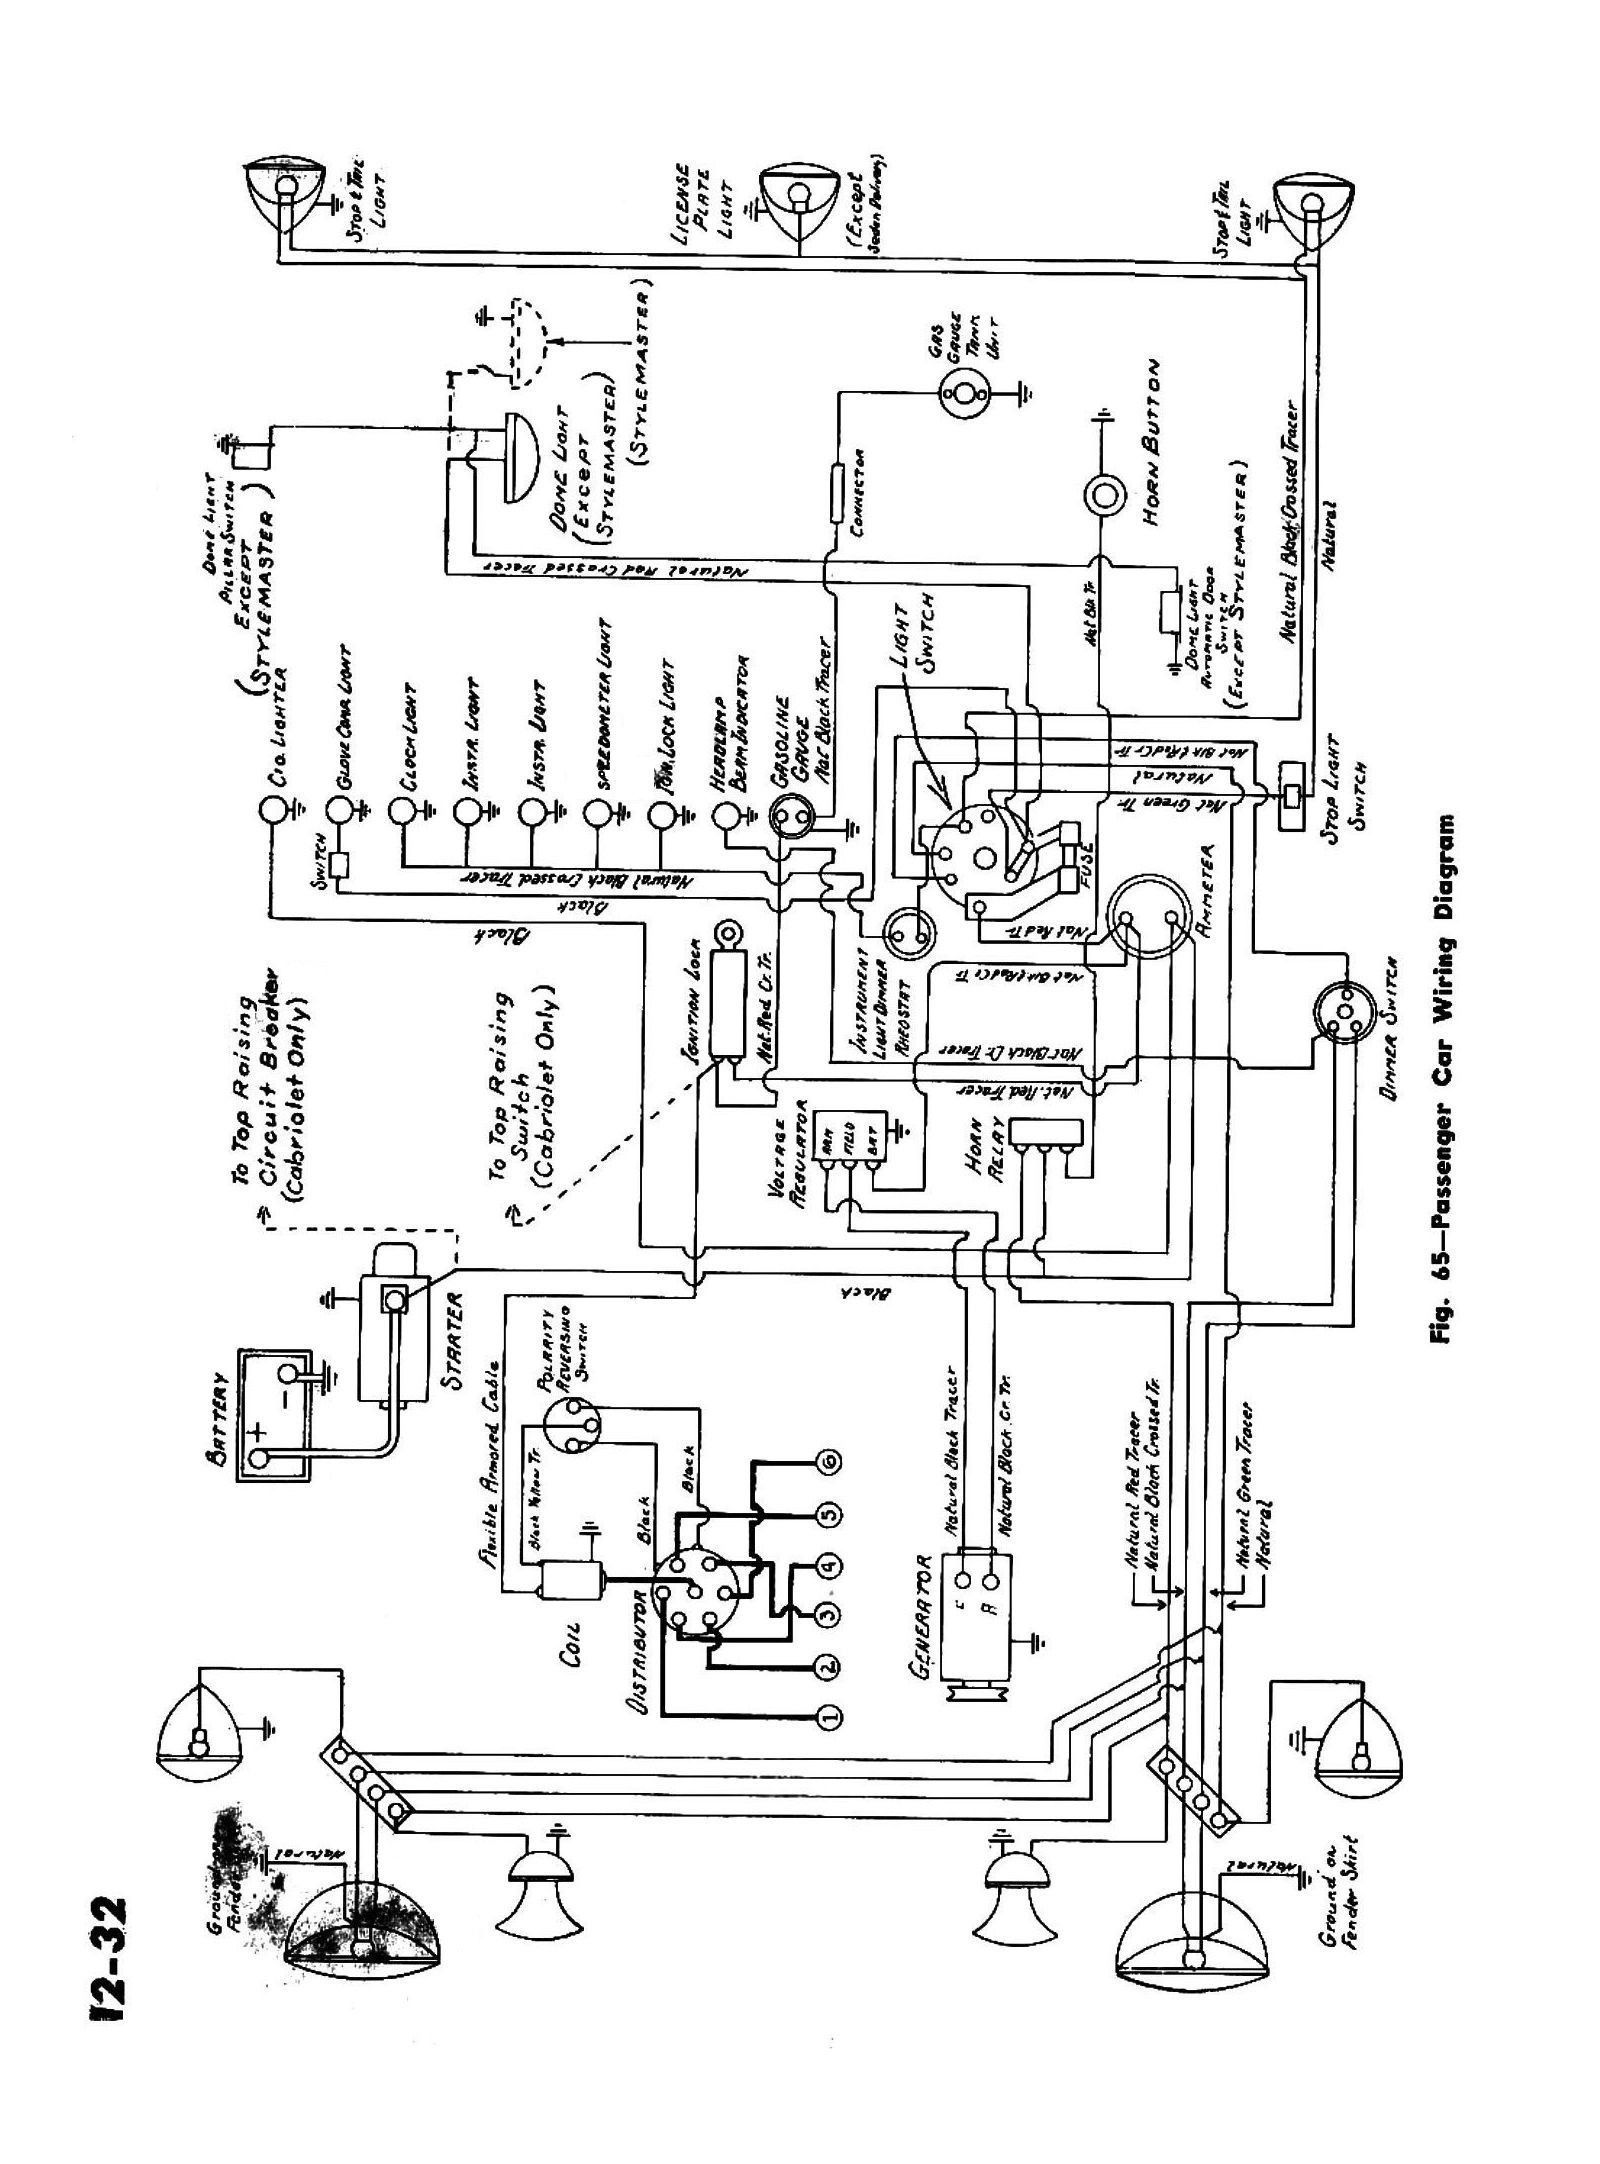 New Understanding Automotive Wiring Diagram Diagram